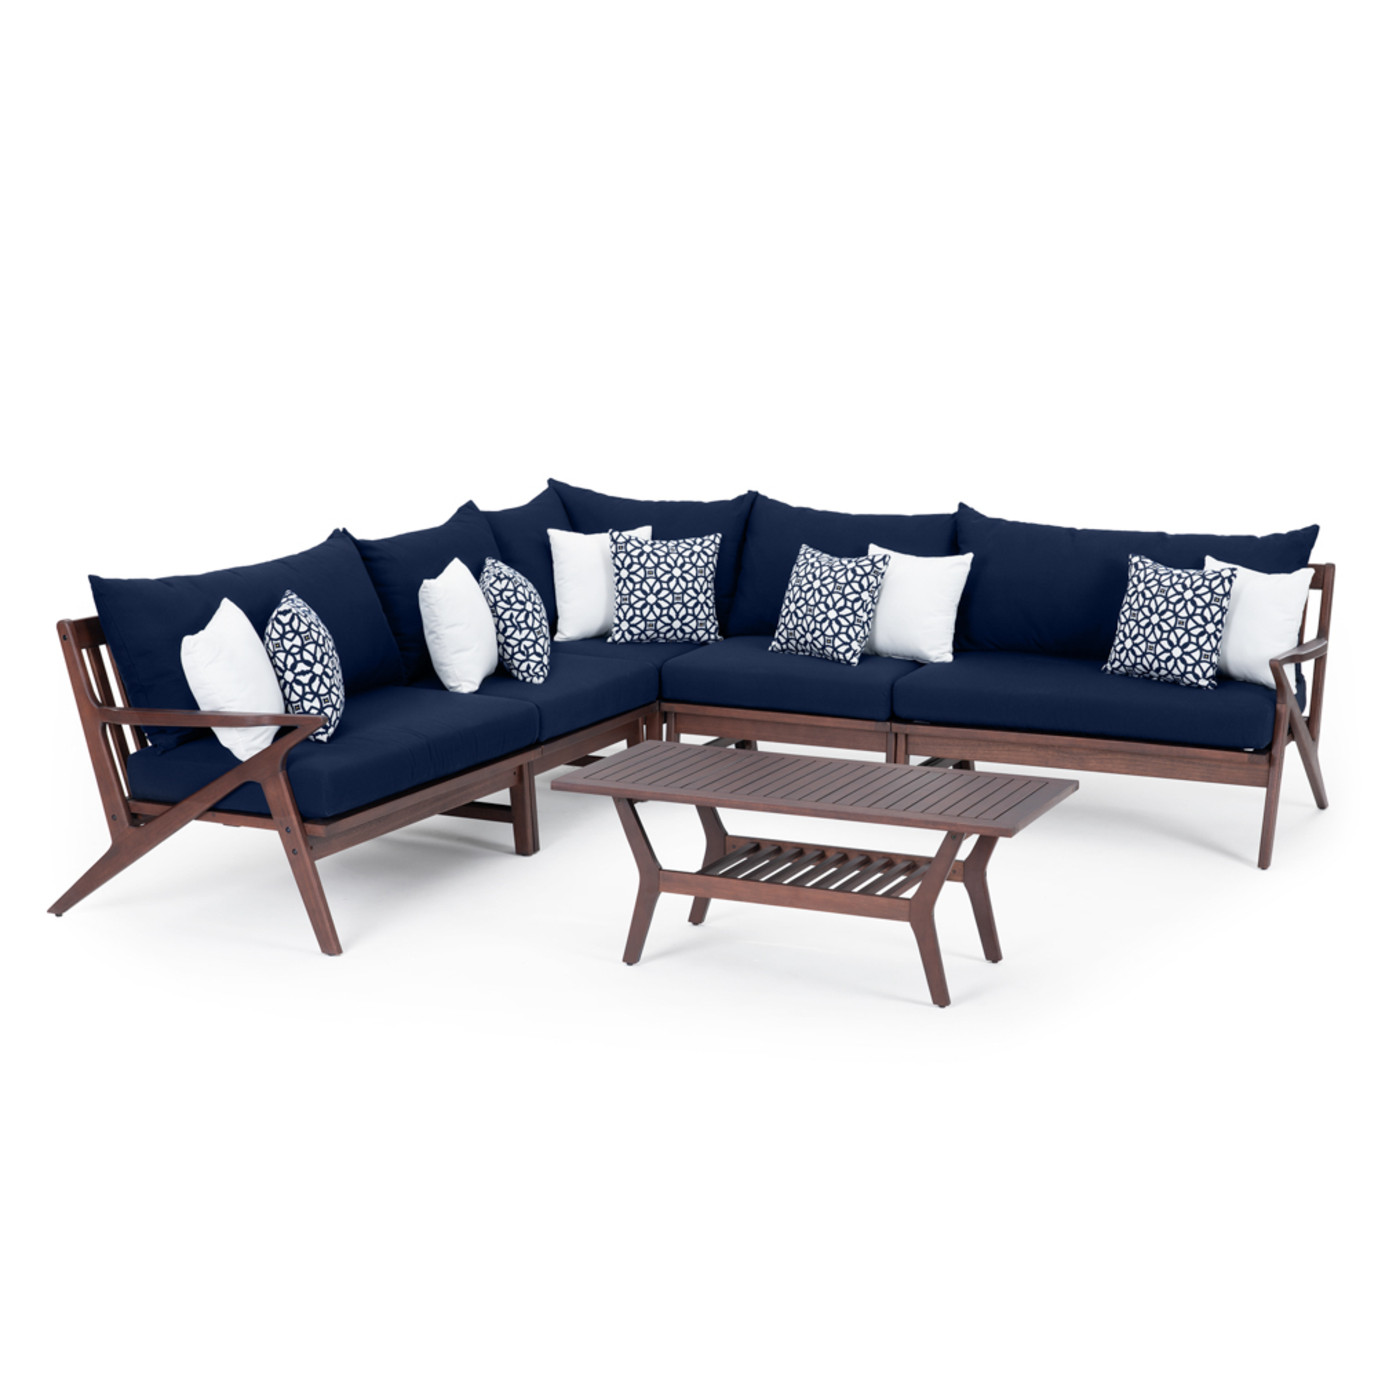 Vaughn 6 Piece Sectional - Navy Blue